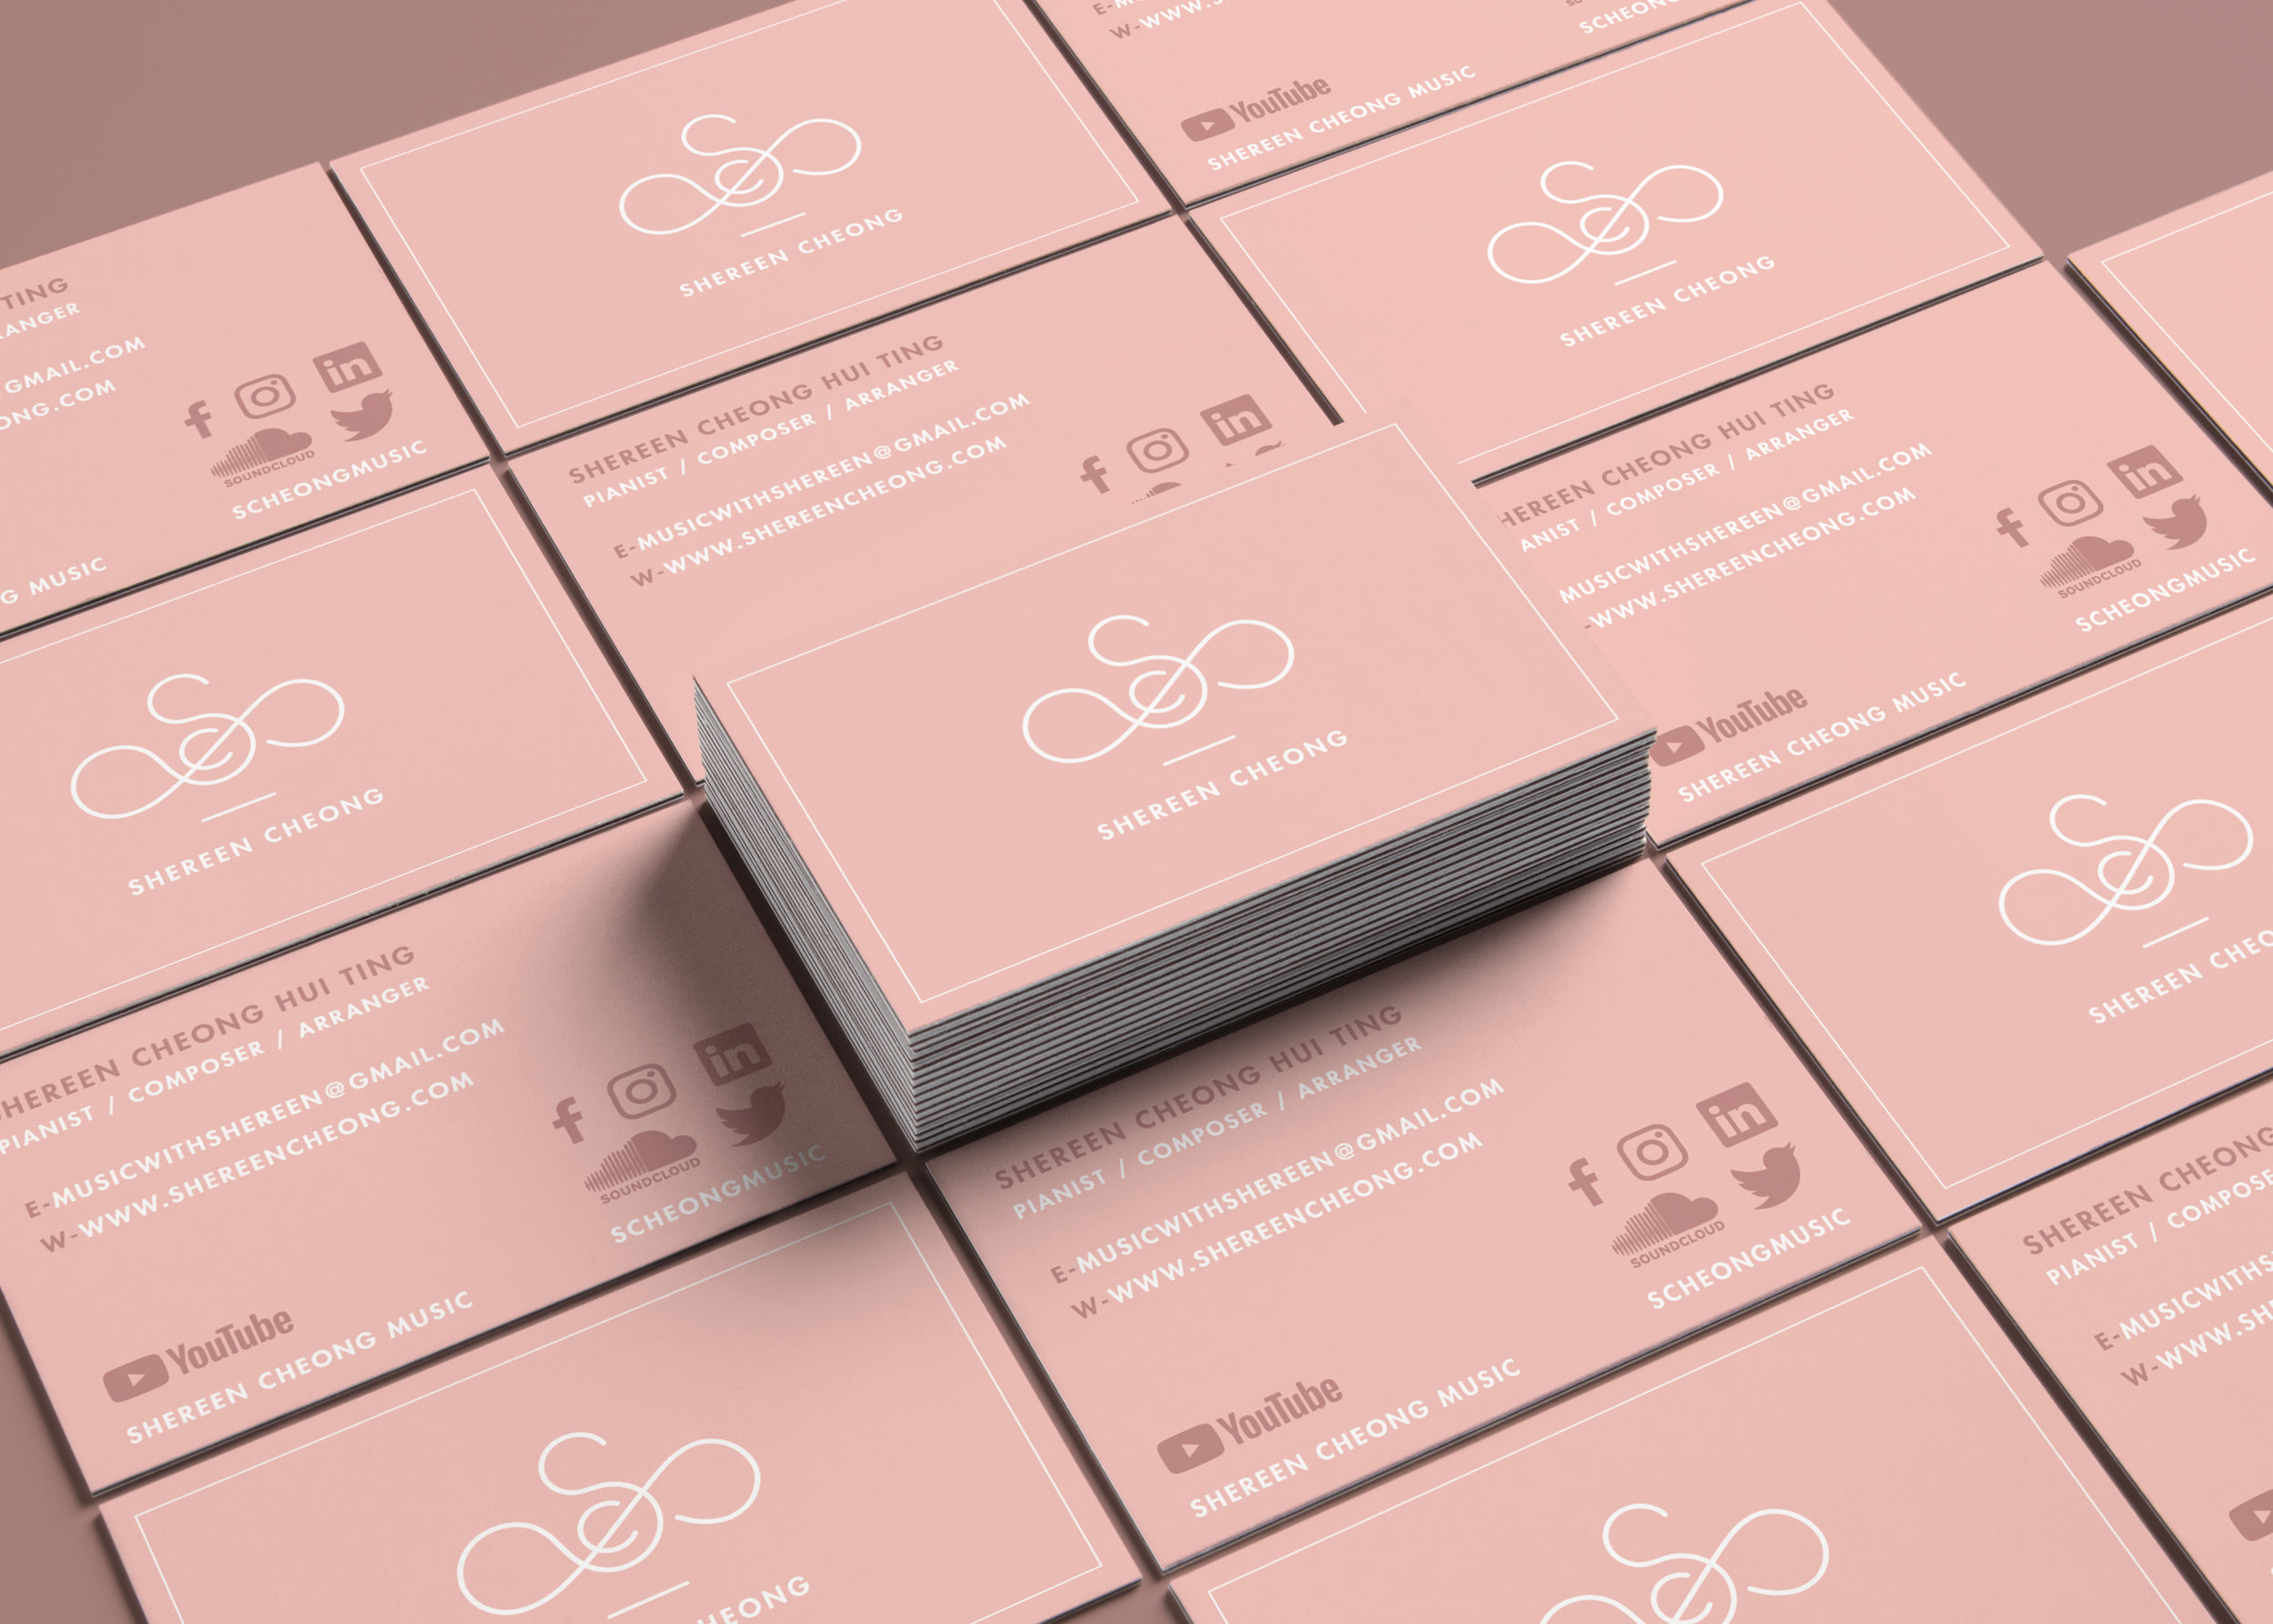 Sher-Business Card Mockup-3.jpg